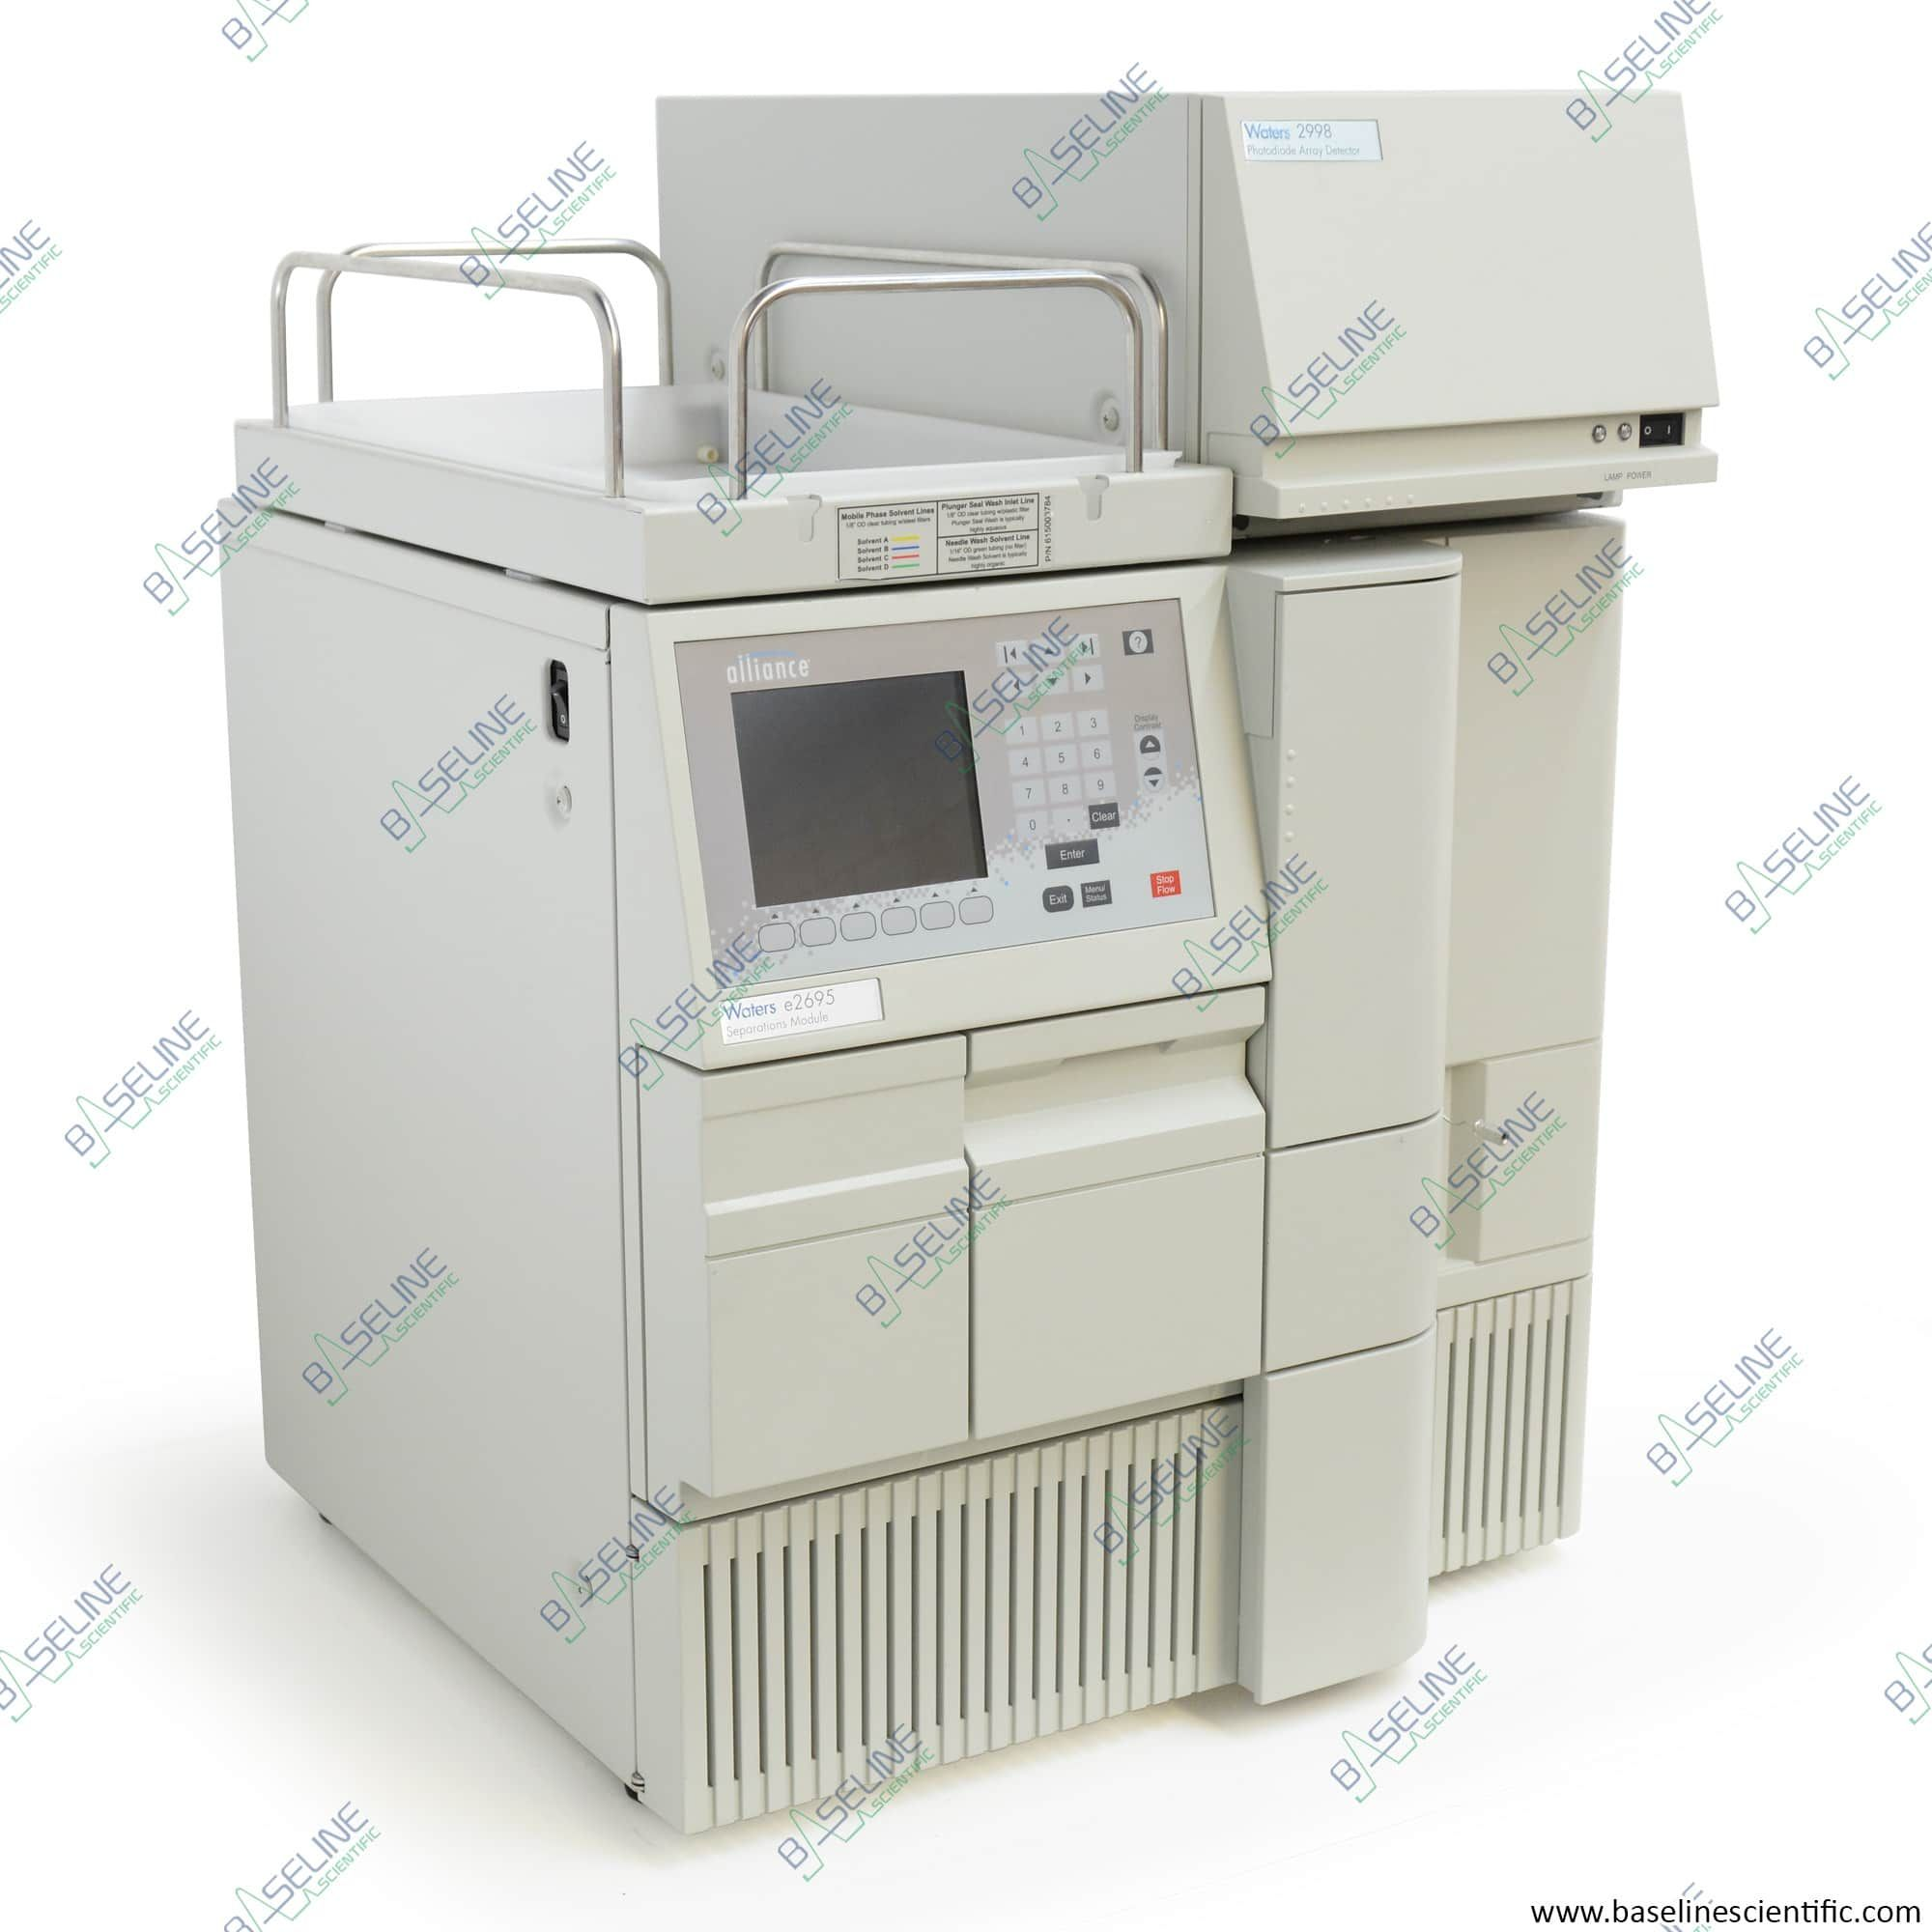 Refurbished Waters Alliance e2695 with 2998 PDA with ONE YEAR WARRANTY